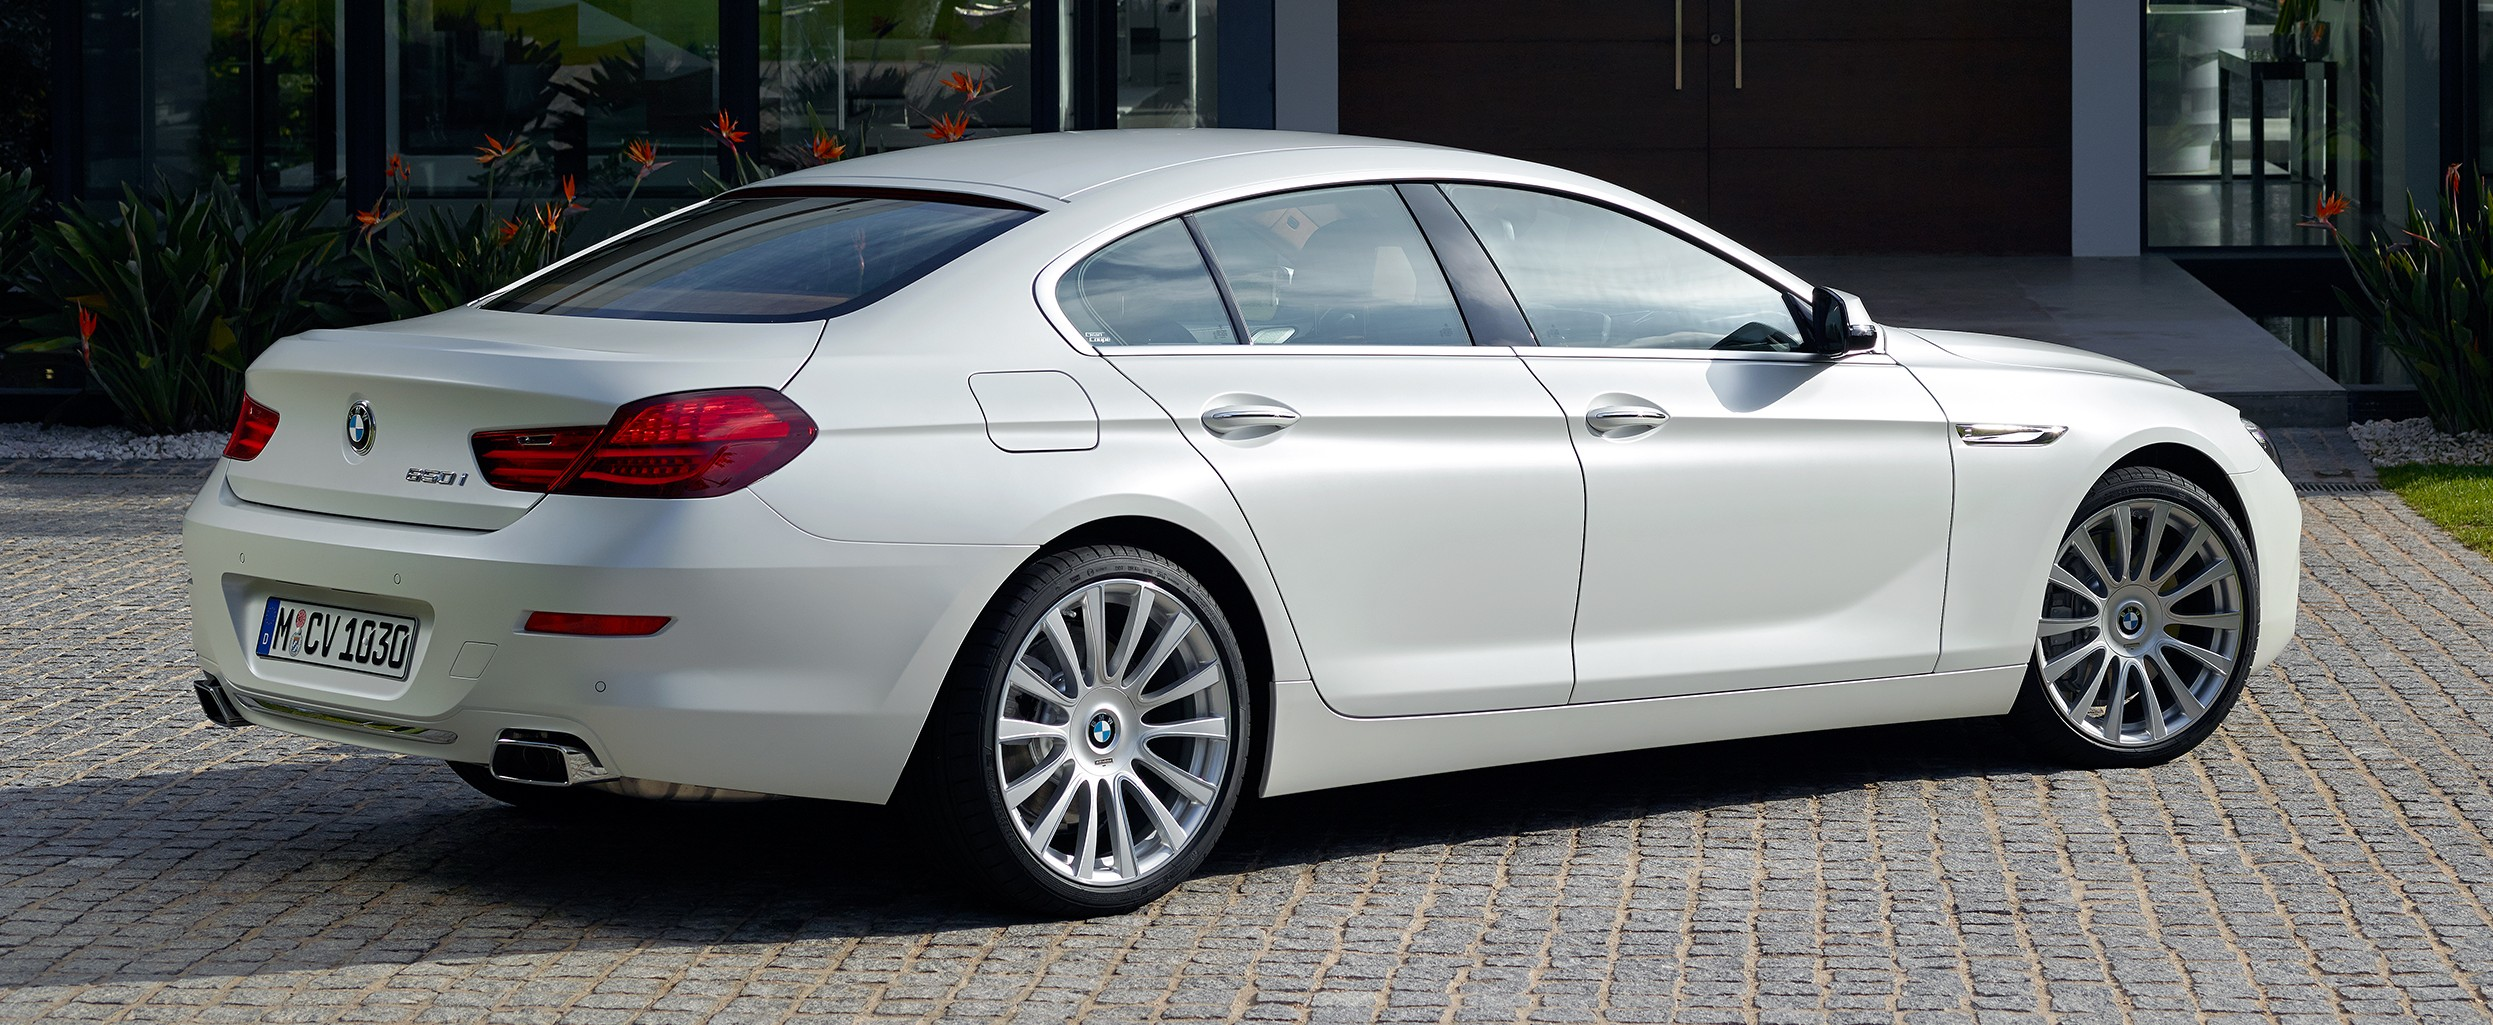 Bmw 6 Series >> BMW 6 Series LCI debuts with subtle changes Paul Tan - Image 295474